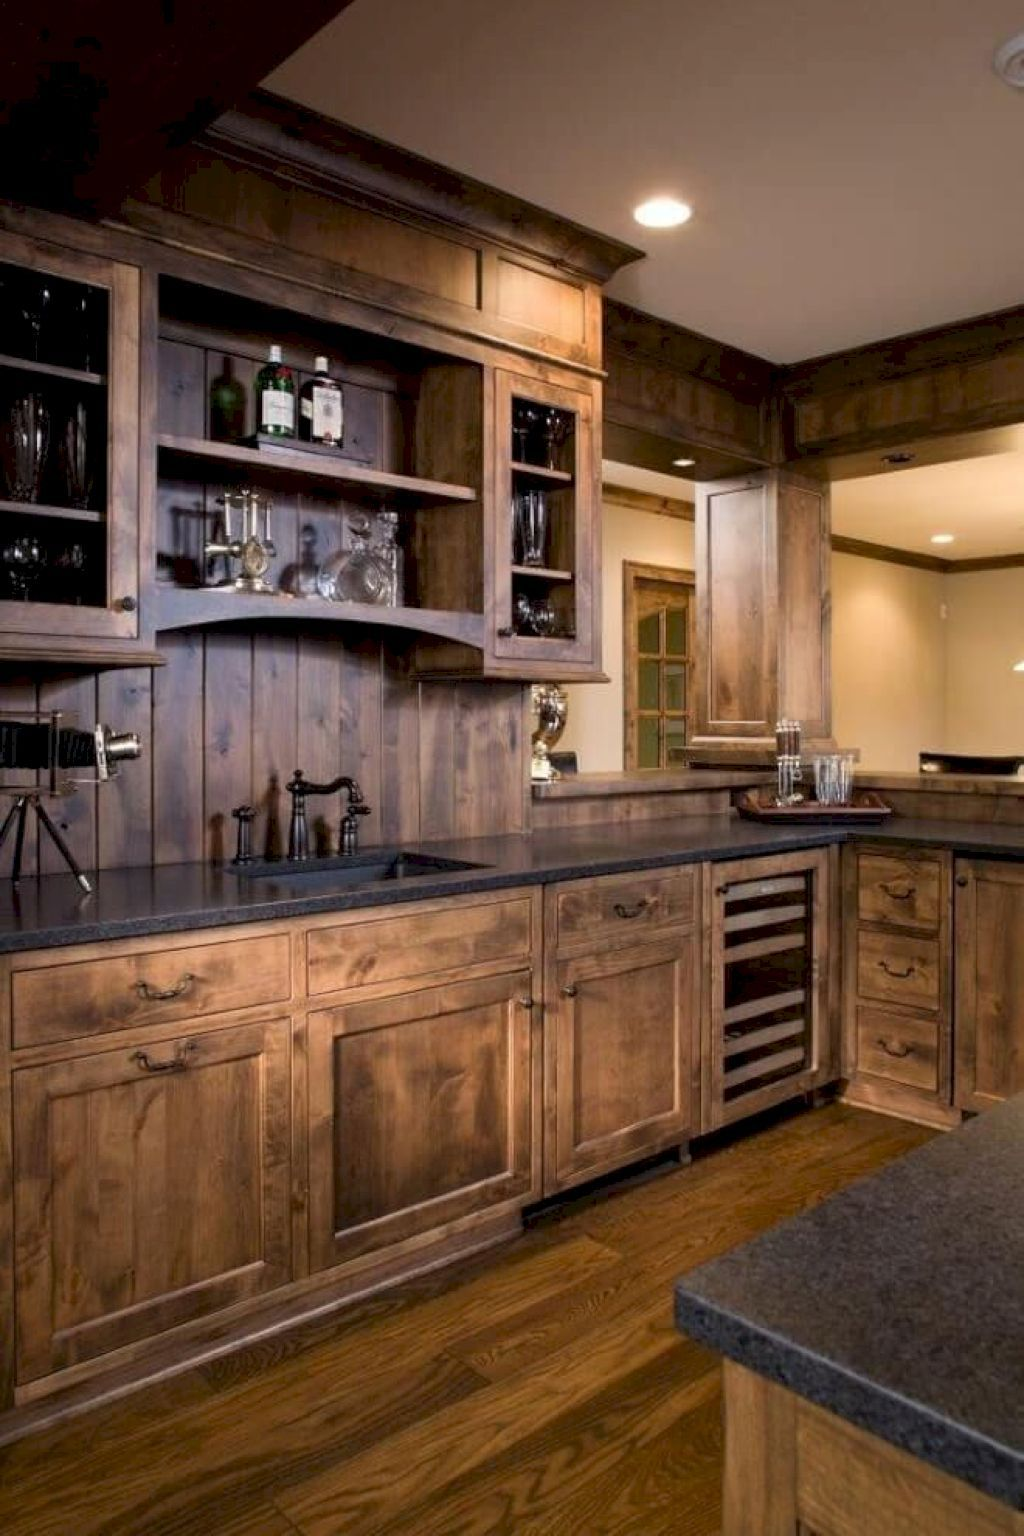 31 Inspiring Rustic Farmhouse Kitchen Cabinets Remodel Ideas Rustic Kitchen Design Rustic Kitchen Rustic Kitchen Cabinets